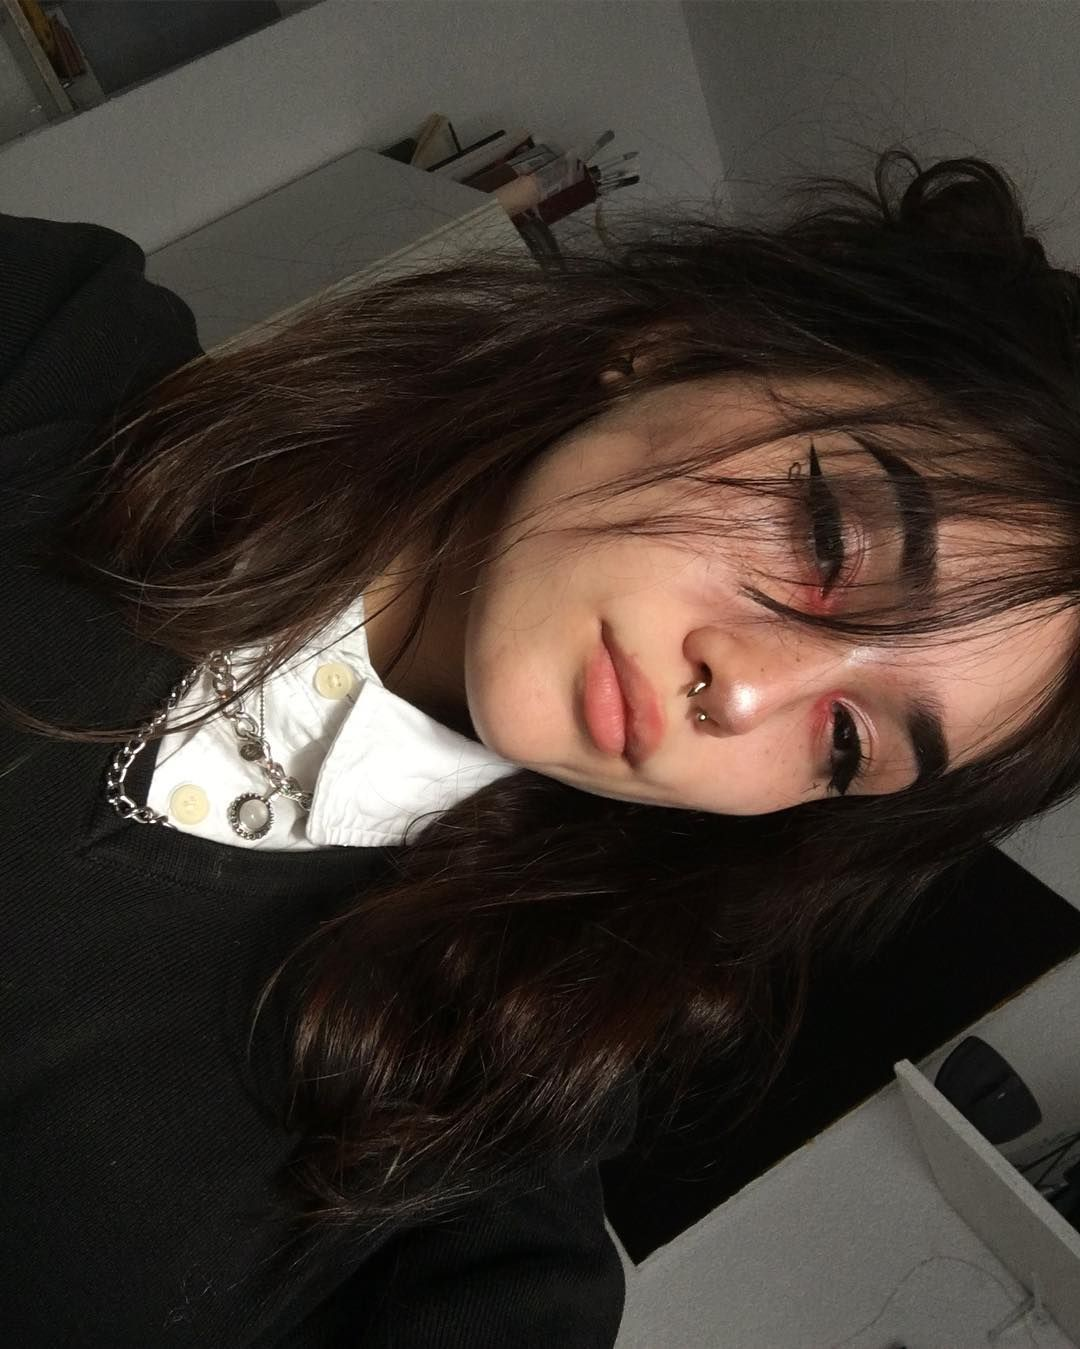 Kasia On Instagram I Need Attention Mood Grunger Egirl Vintage Grunge Softgrunge Softaesthetic Edgy Makeup Grunge Makeup Aesthetic Hair